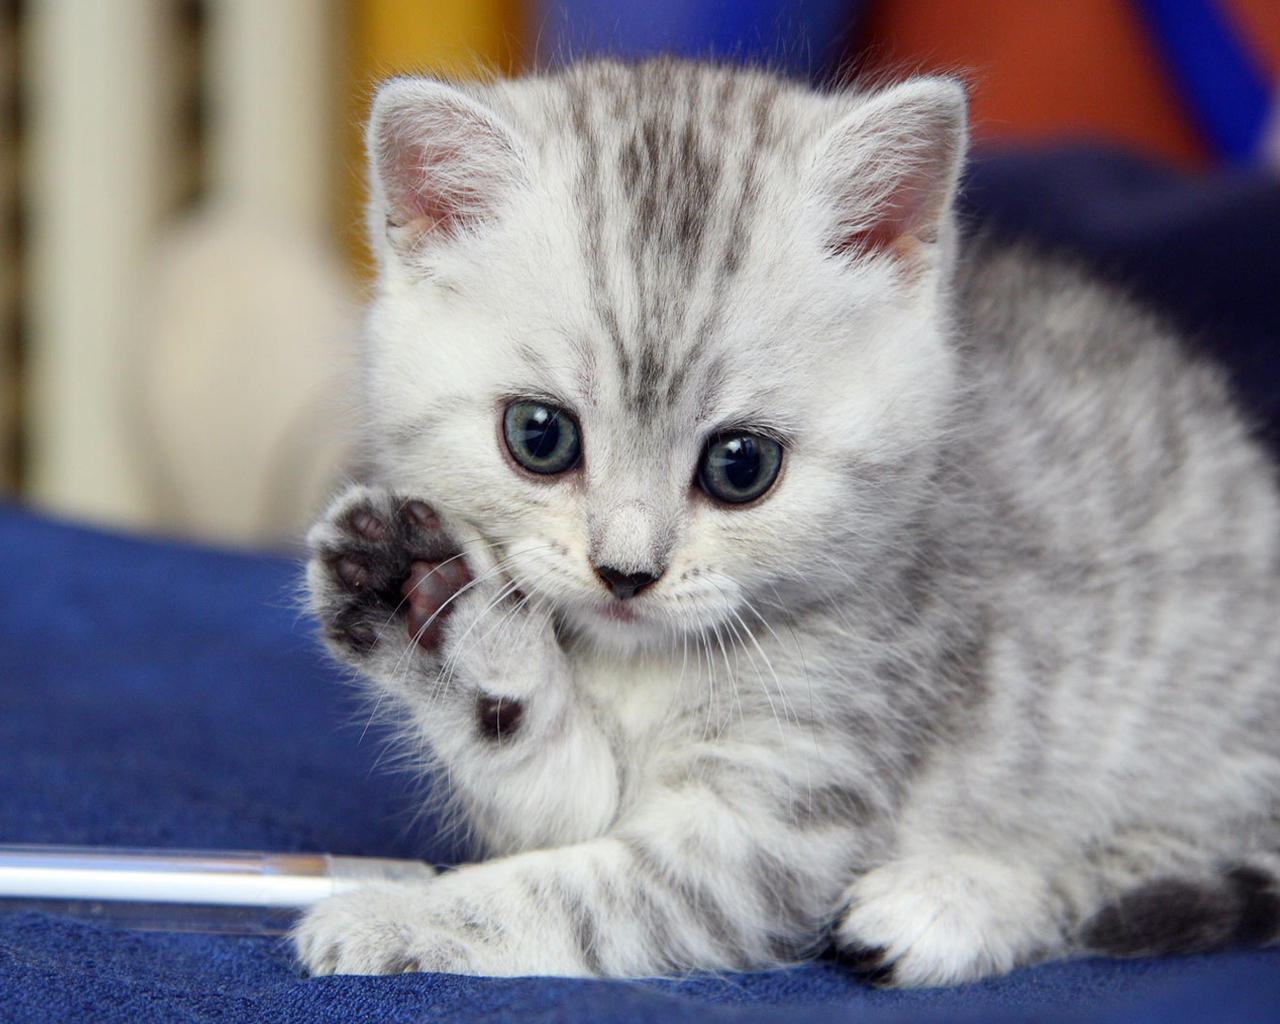 Cute-kitten-saying-hello « Why Evolution Is True